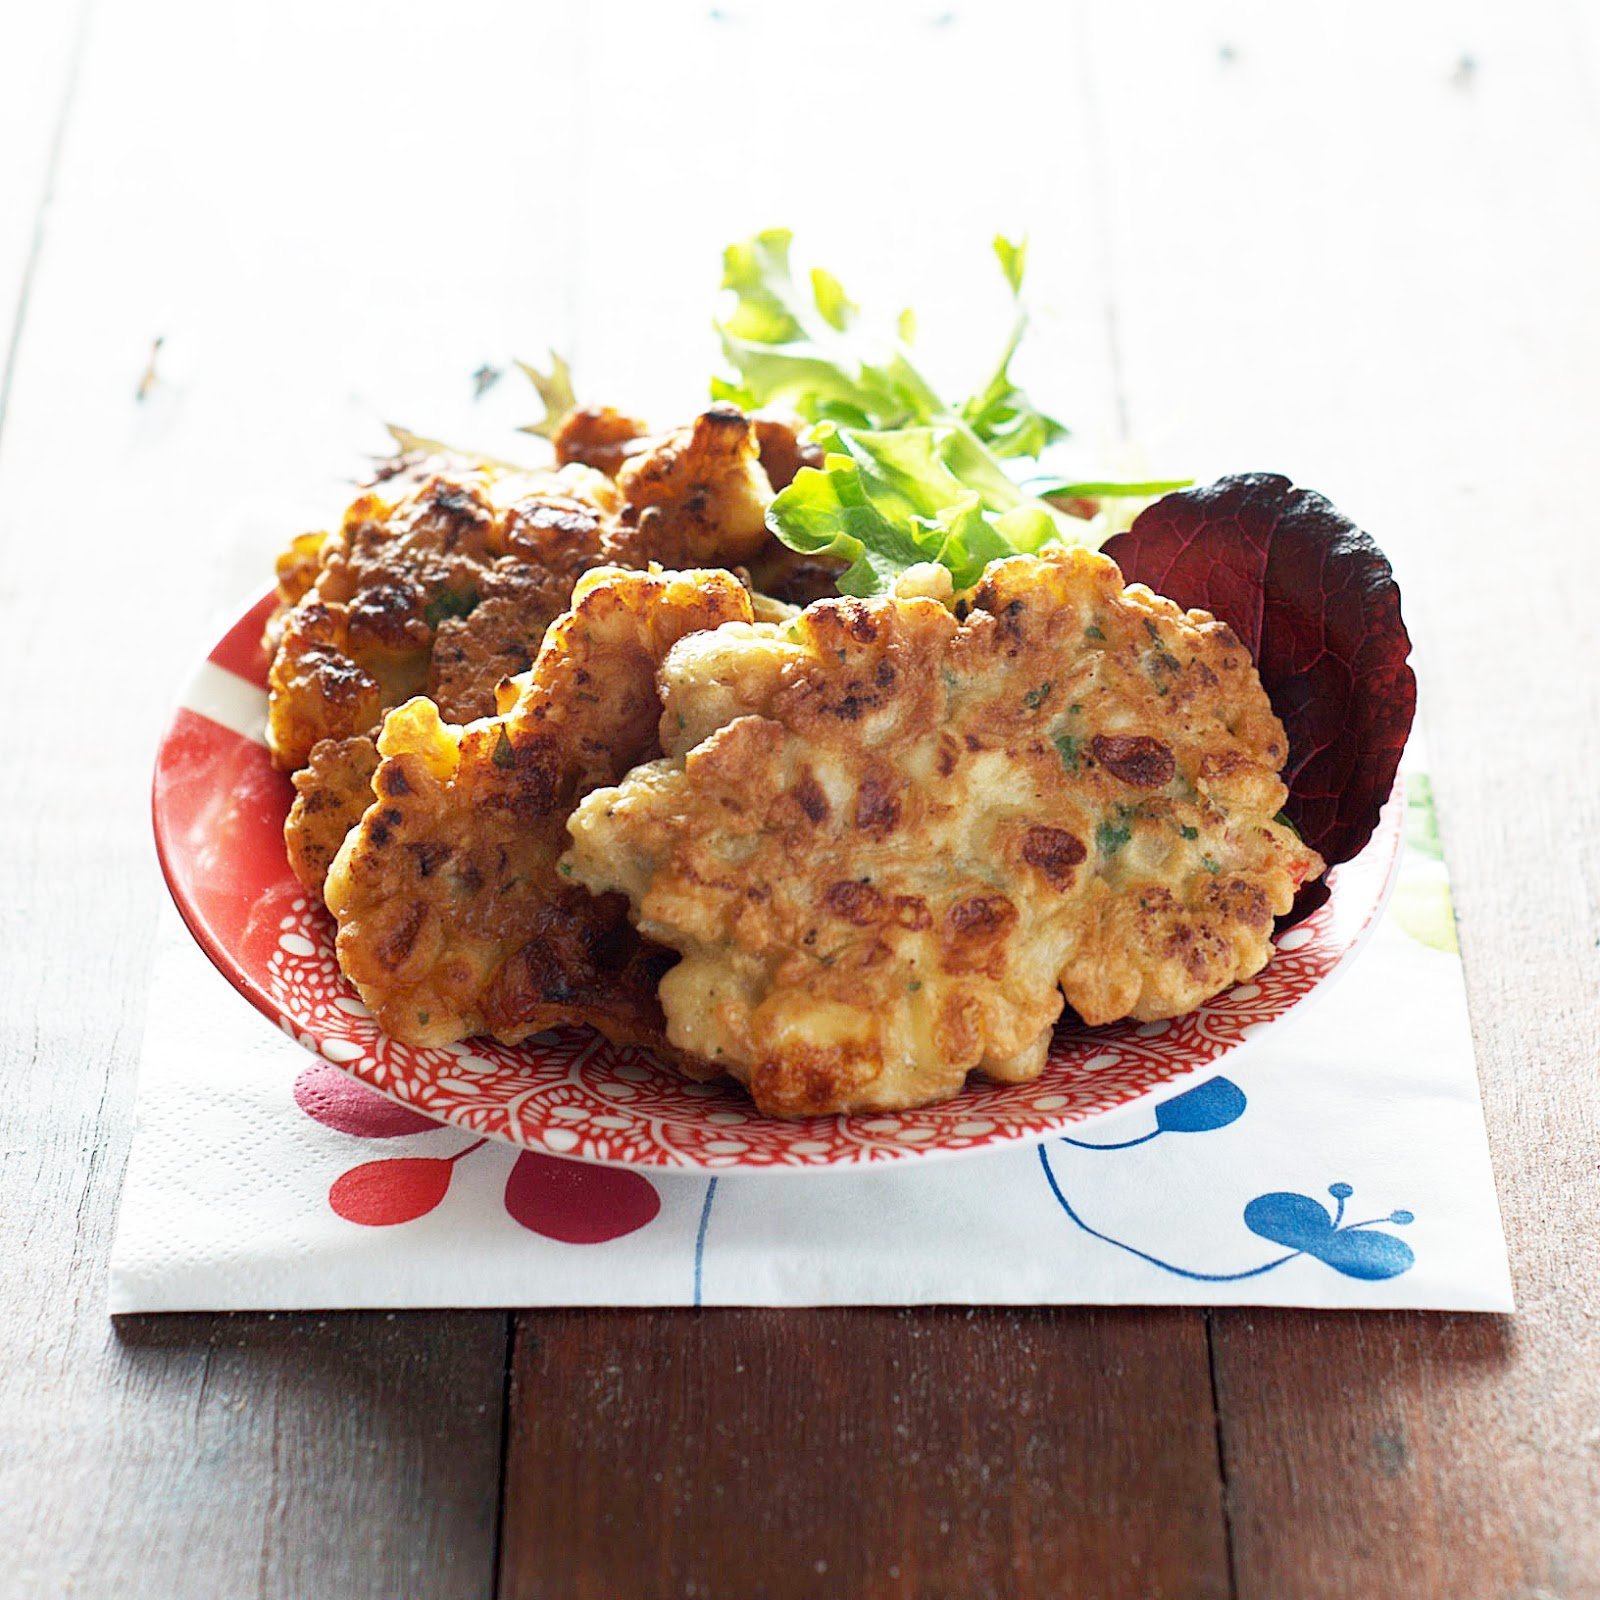 ROASTED CAULIFLOWER AND PROVOLONE FRITTERS